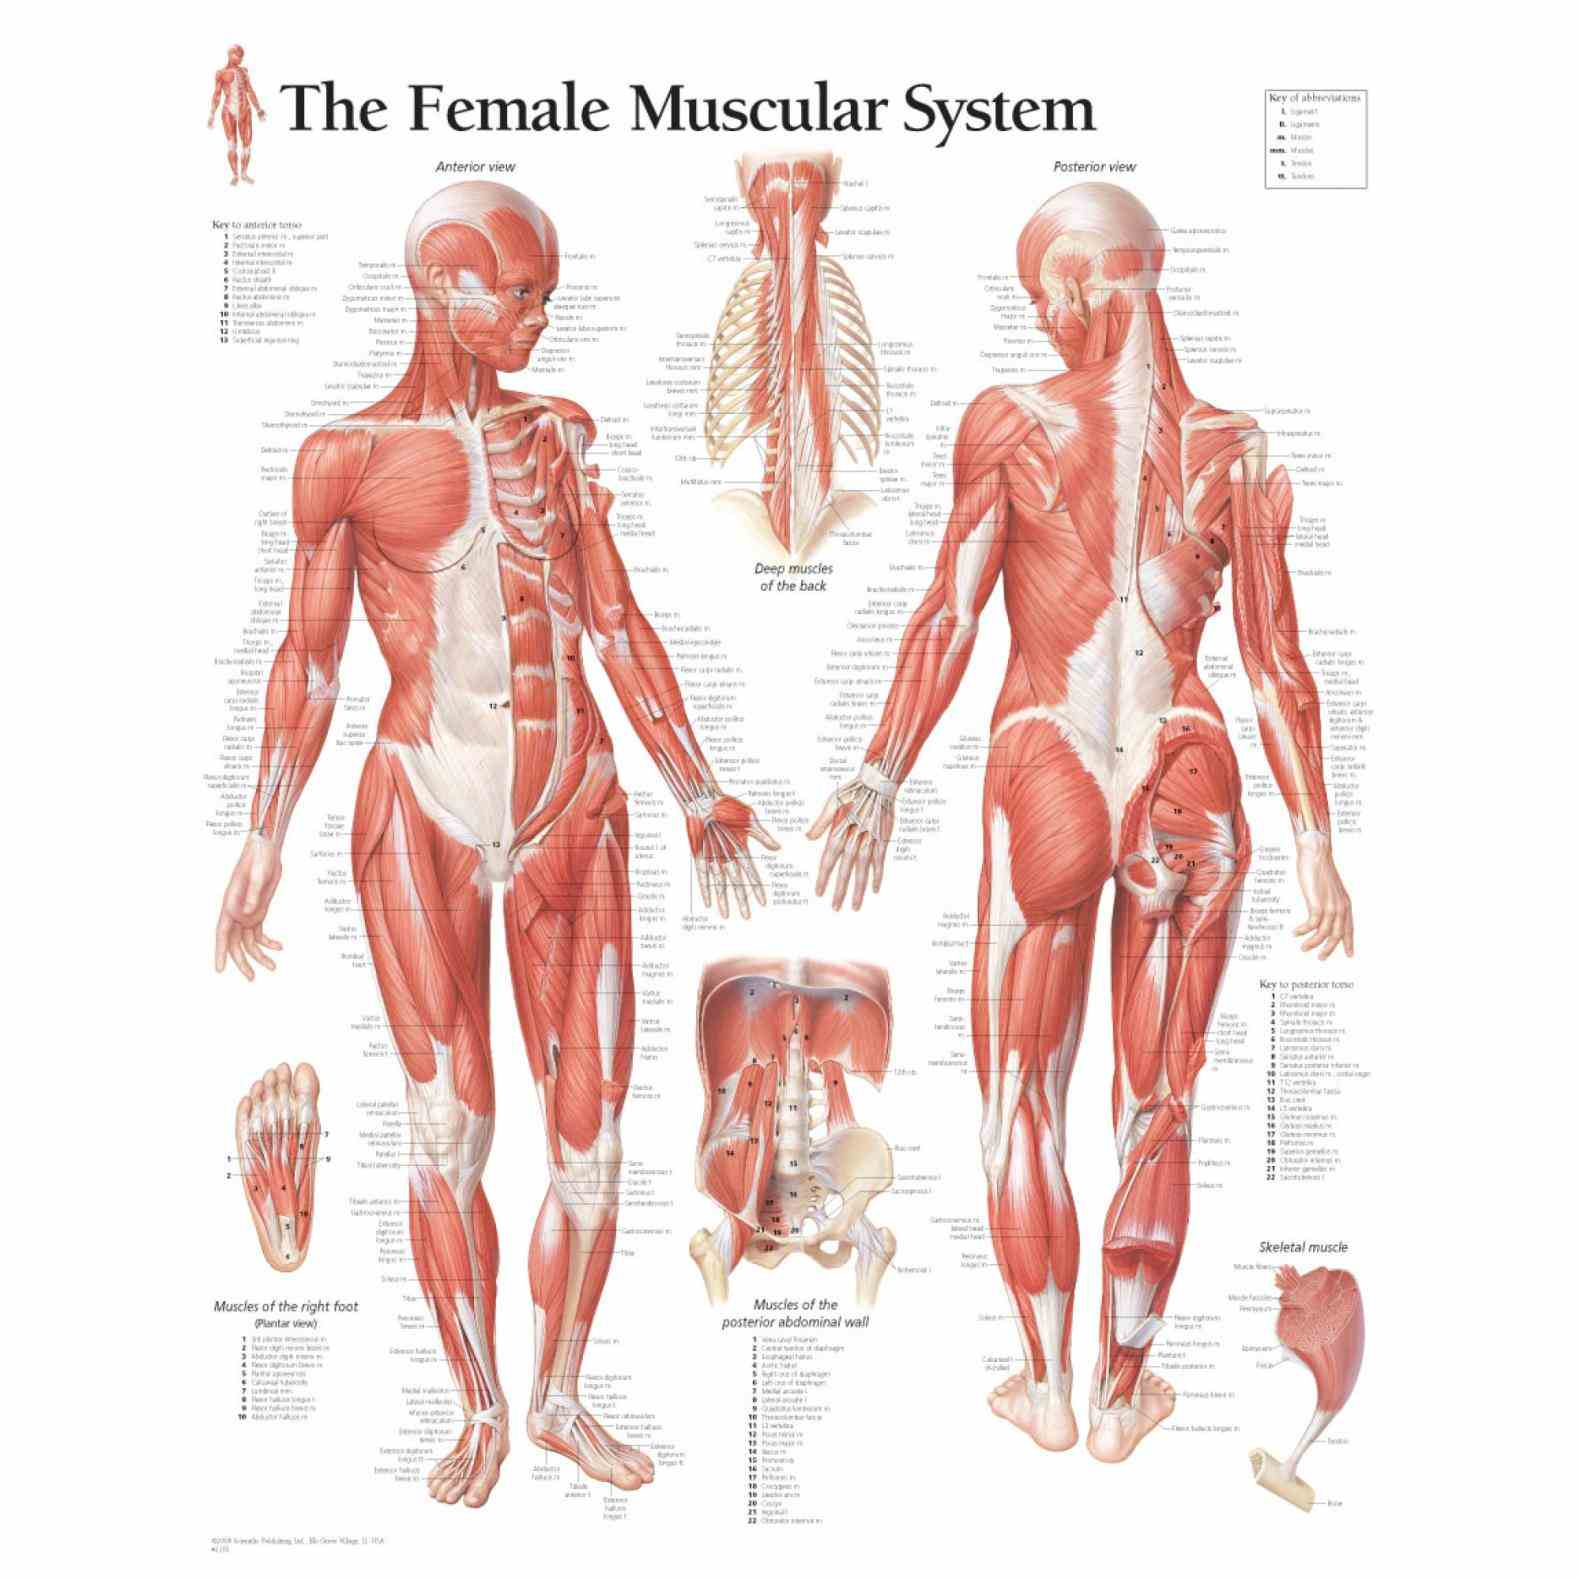 sartorius soleus items Female Muscular System Diagram Anatomy of our collection includes human muscle charts displaying informative diagrams the